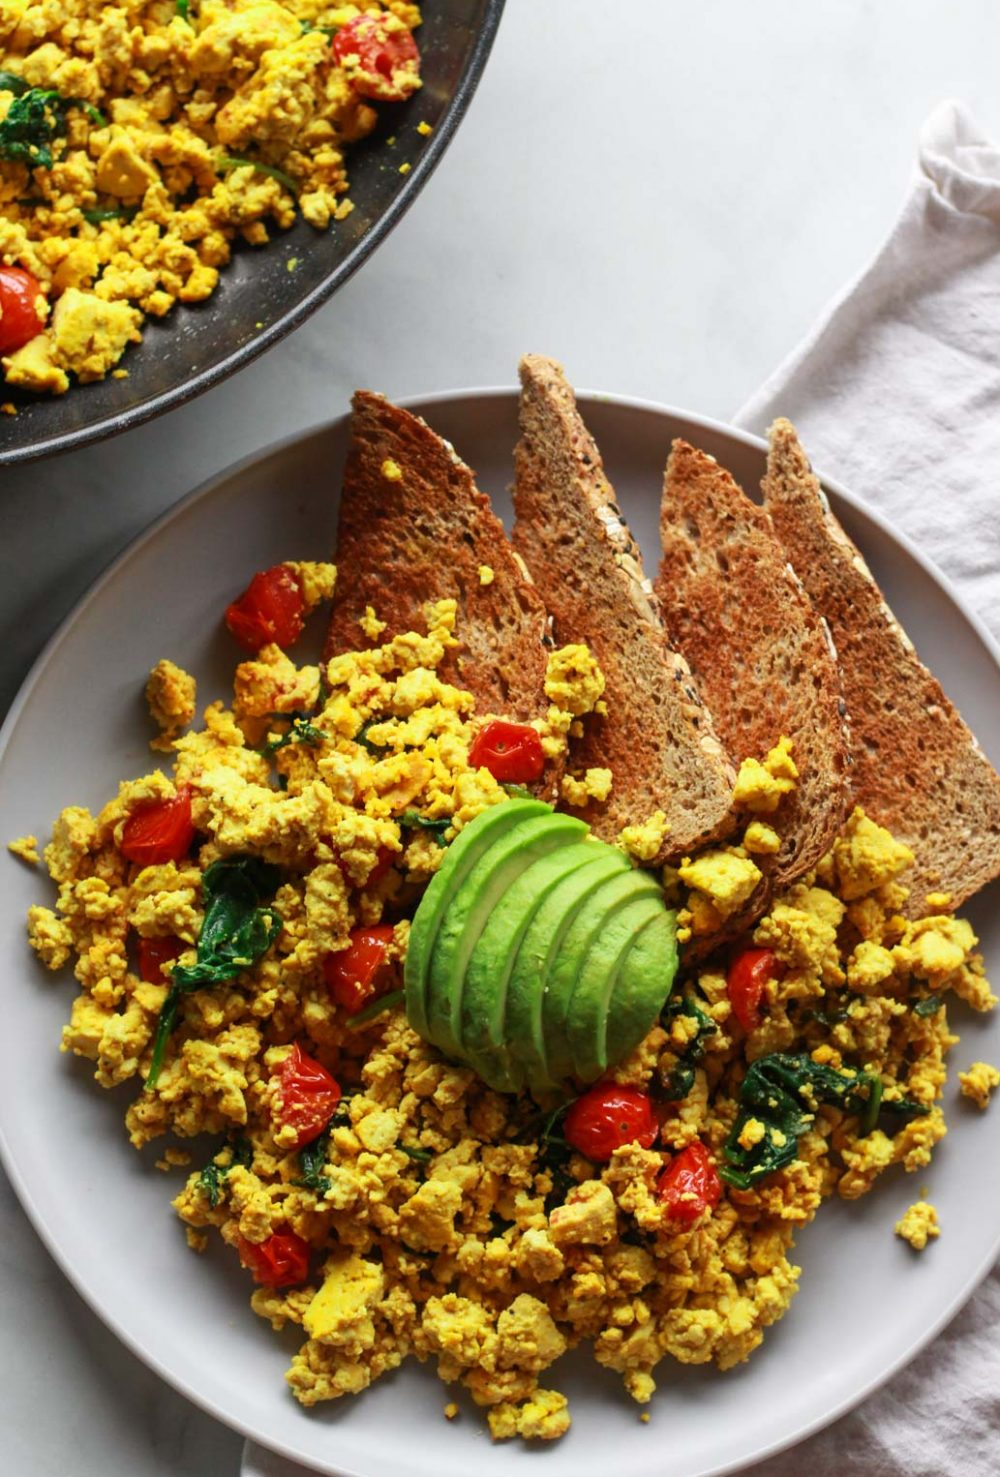 """How to make a super flavorful tofu scramble with spinach and cherry tomatoes. Forget about """"bland"""" tofu, this tofu scramble is bursting with umami flavor, seasoned with nutritional yeast and tahini. A great plant-based alternative to scrambled eggs, this flavorful tofu scramble recipe is sure to be a vegan breakfast favorite!"""